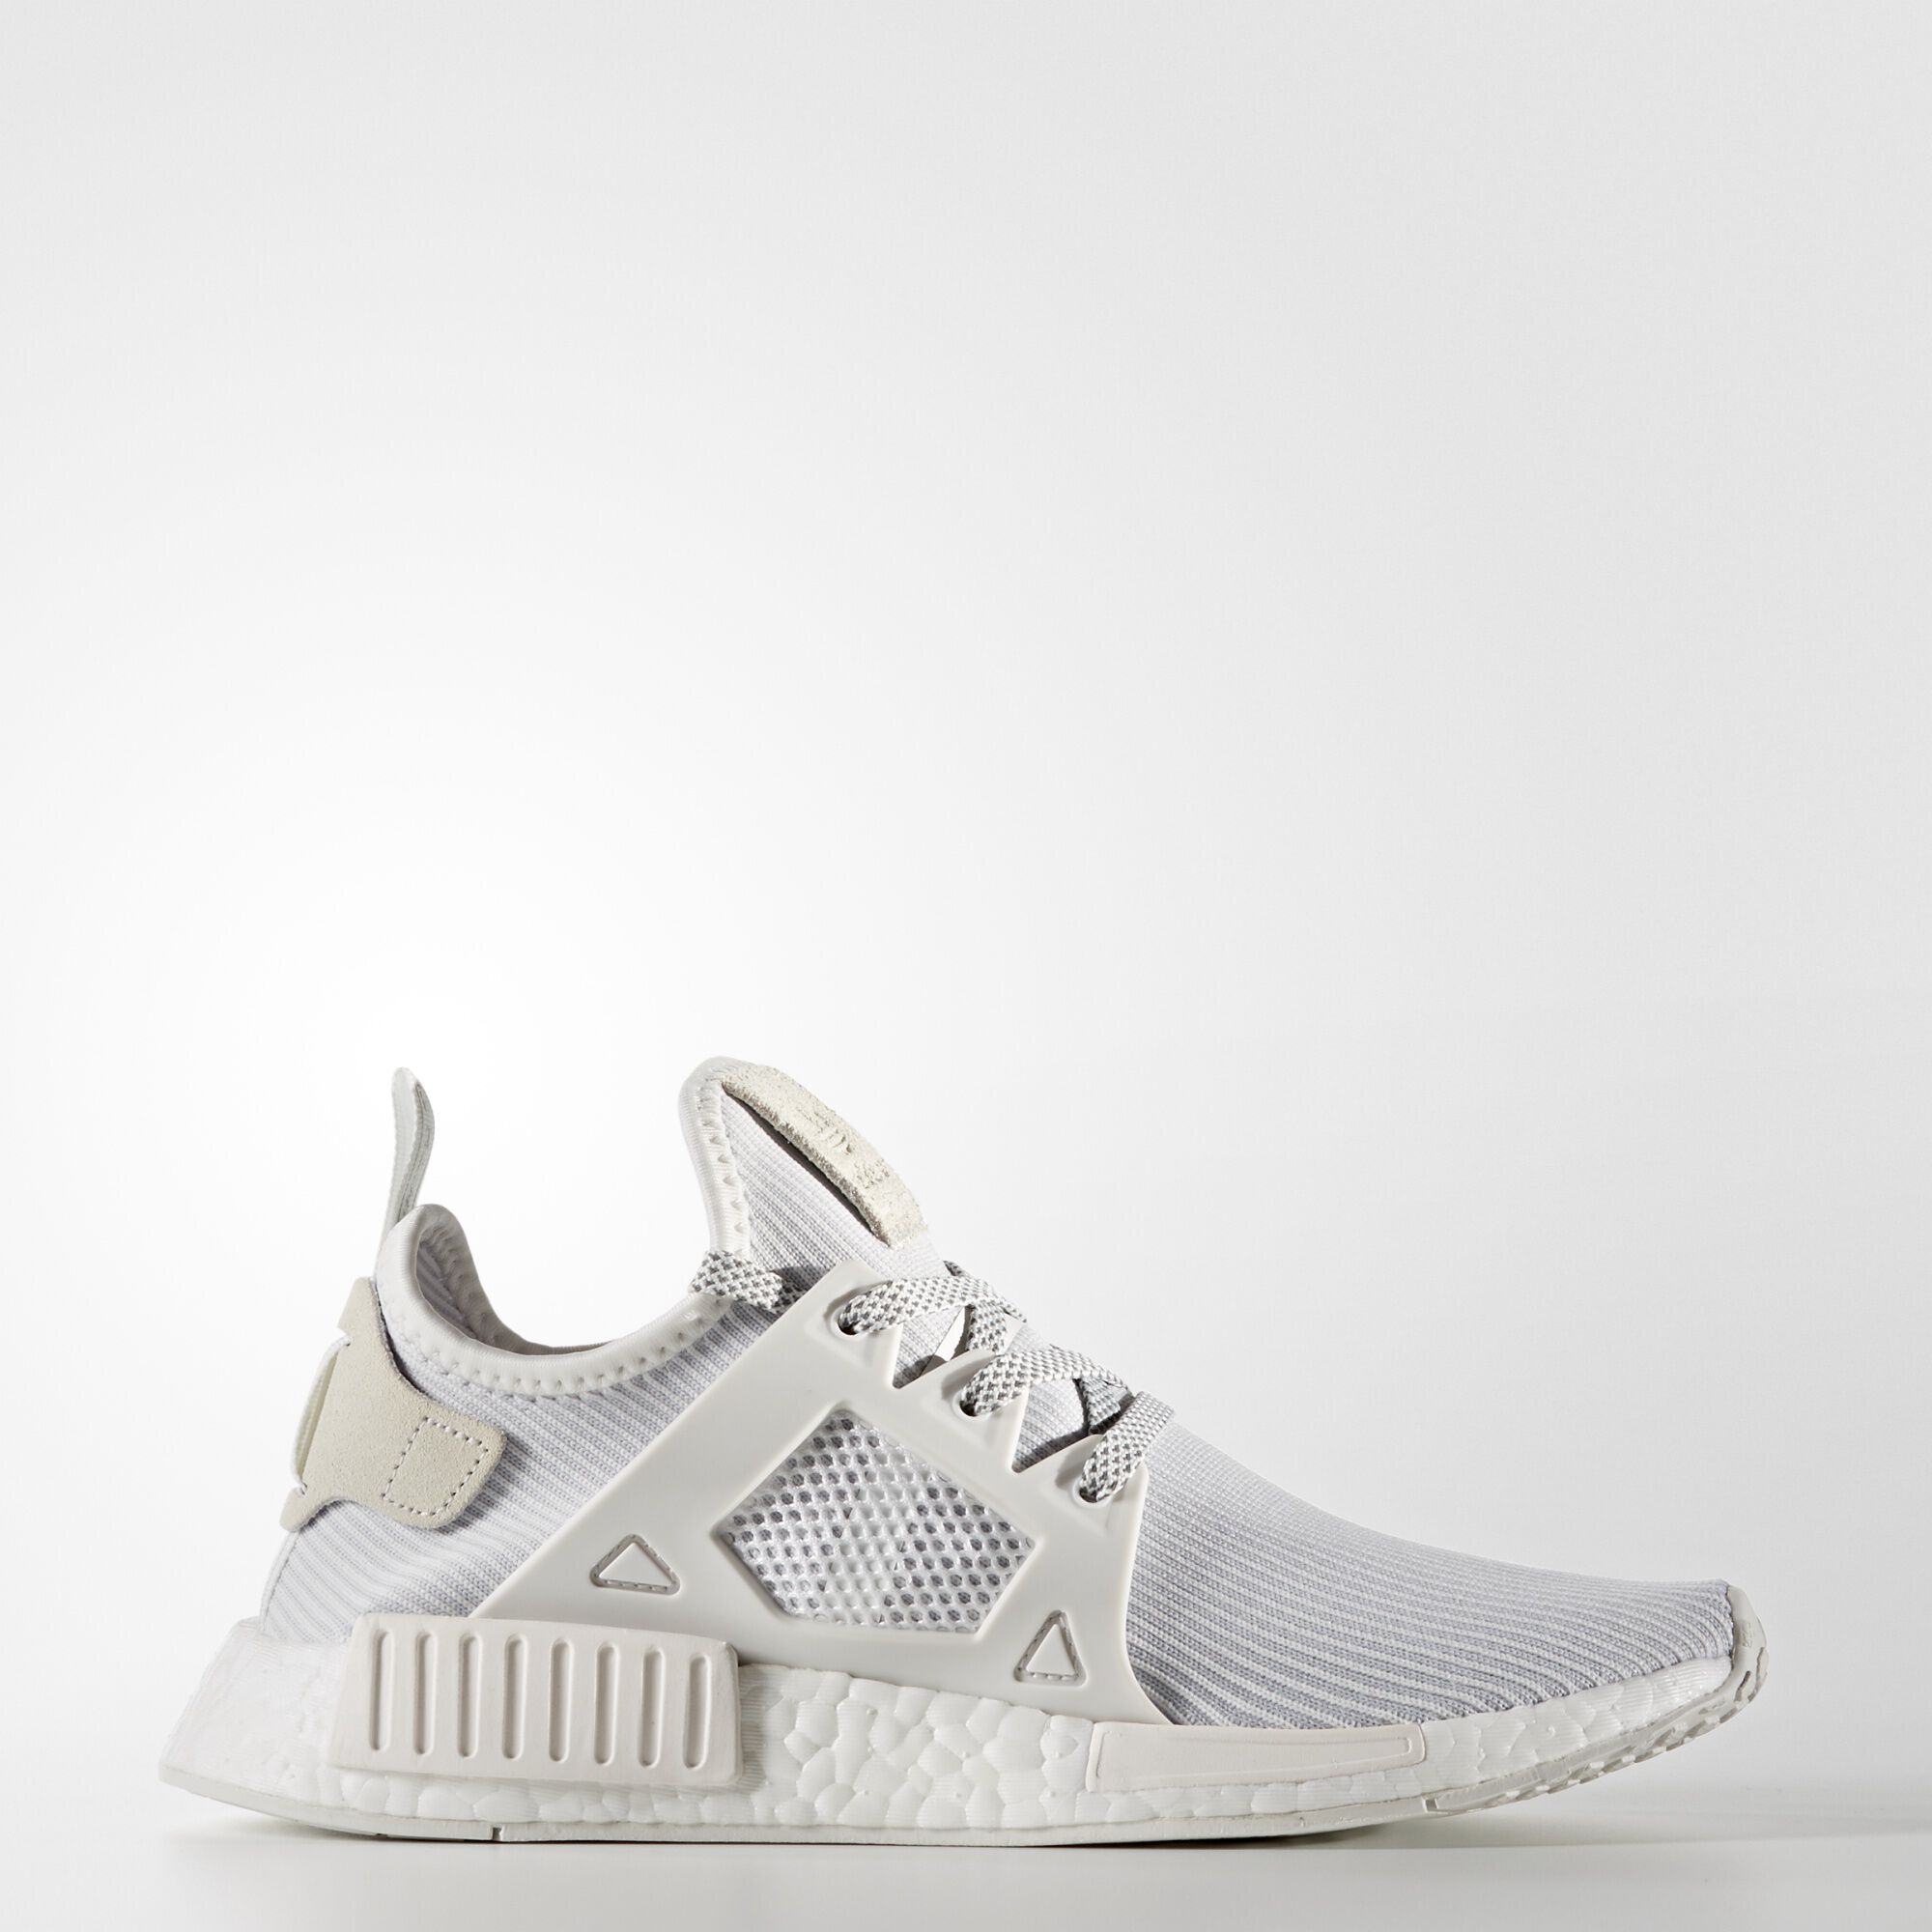 mhqbnq adidas NMD Shoes - R1, R2, XR1 NMDs and More | adidas US